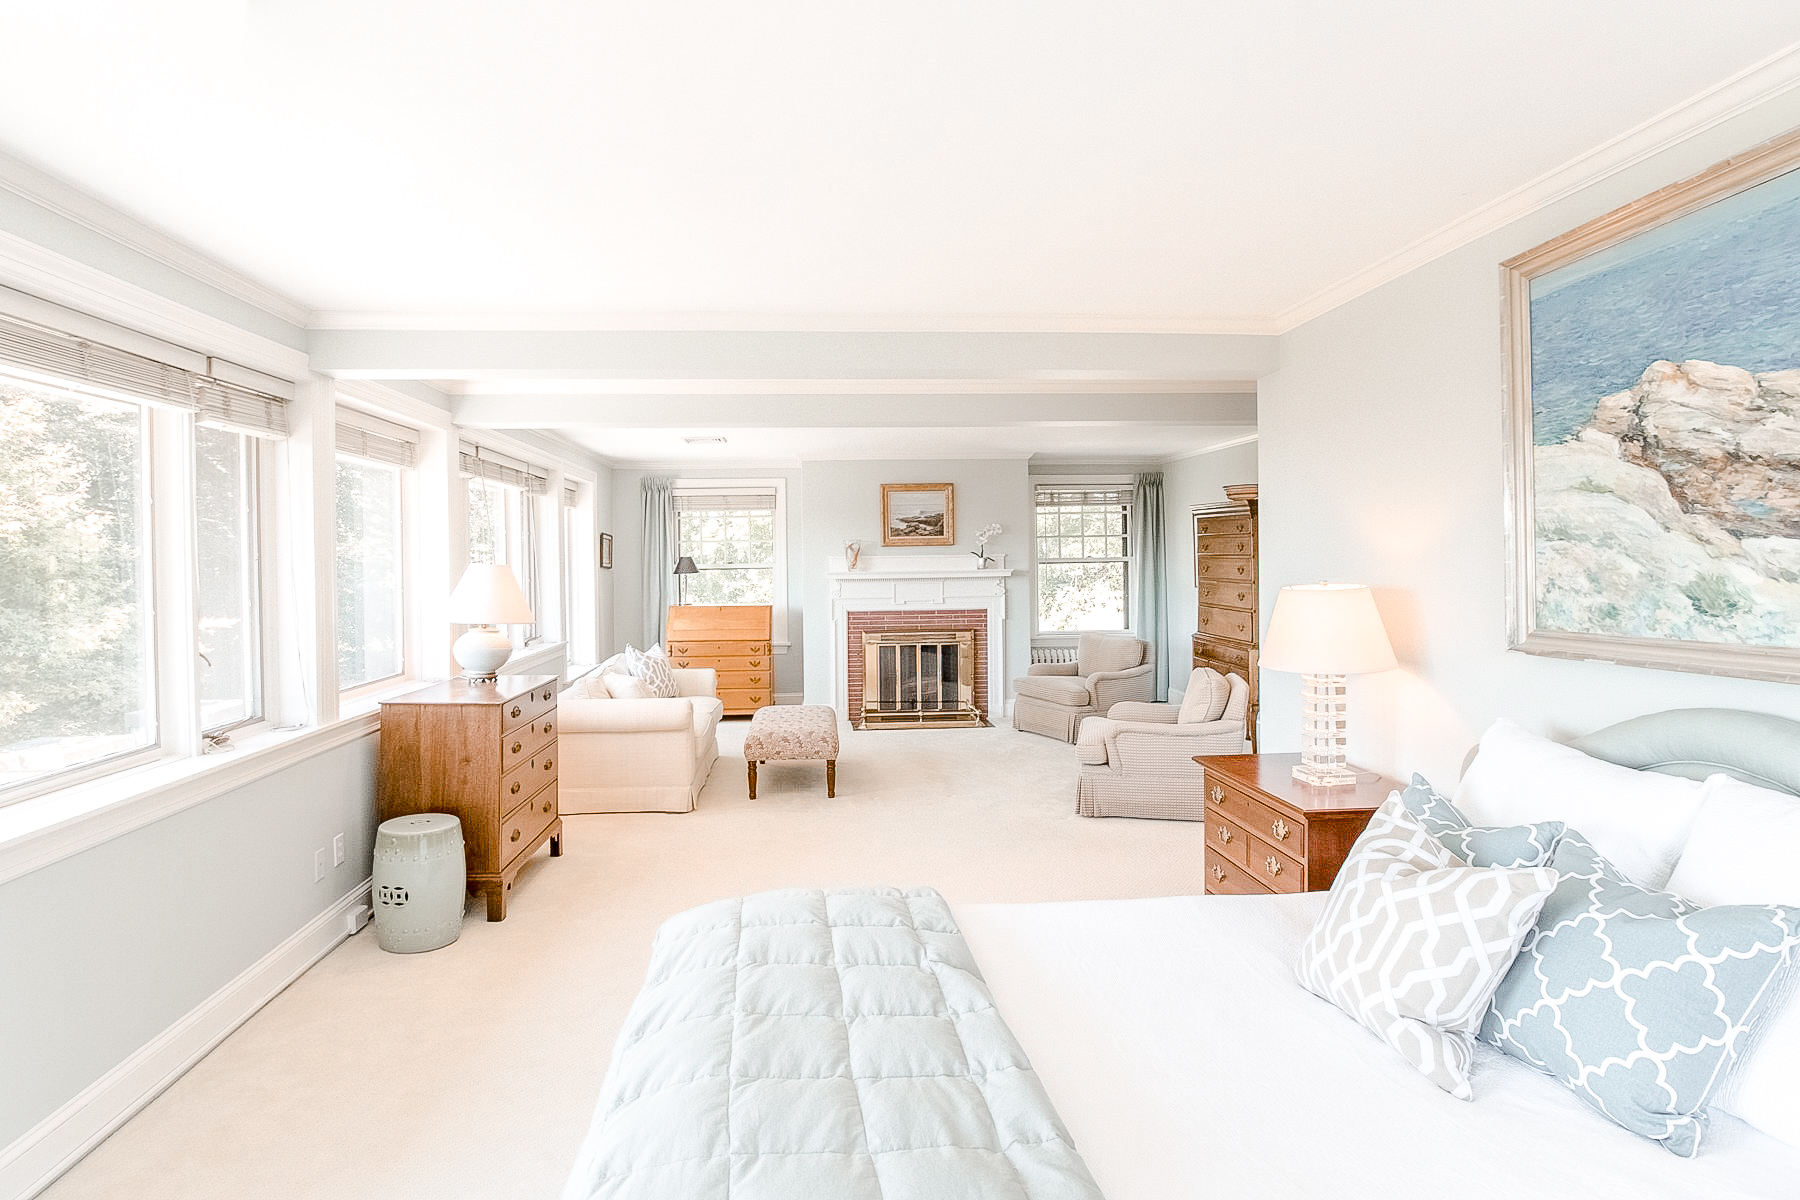 Luxe_and_Livable_Interior_Design_Blog_by_Maloney_Interiors_Mott_and_Chase_Realty_18.jpg